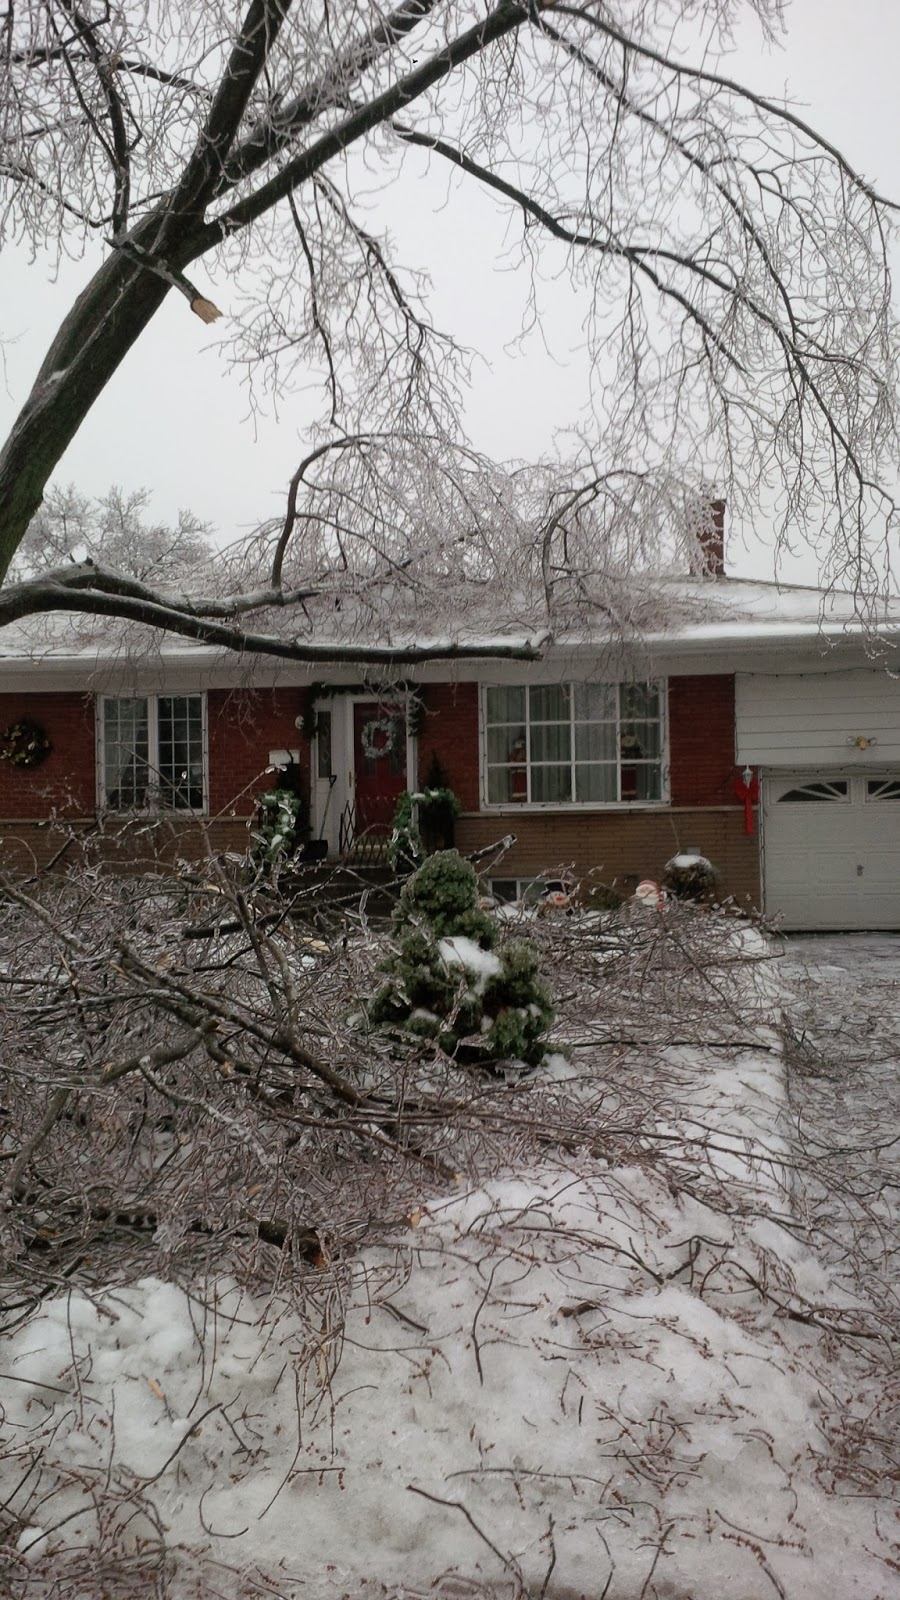 ice storm toronto 2013 tree falls on house